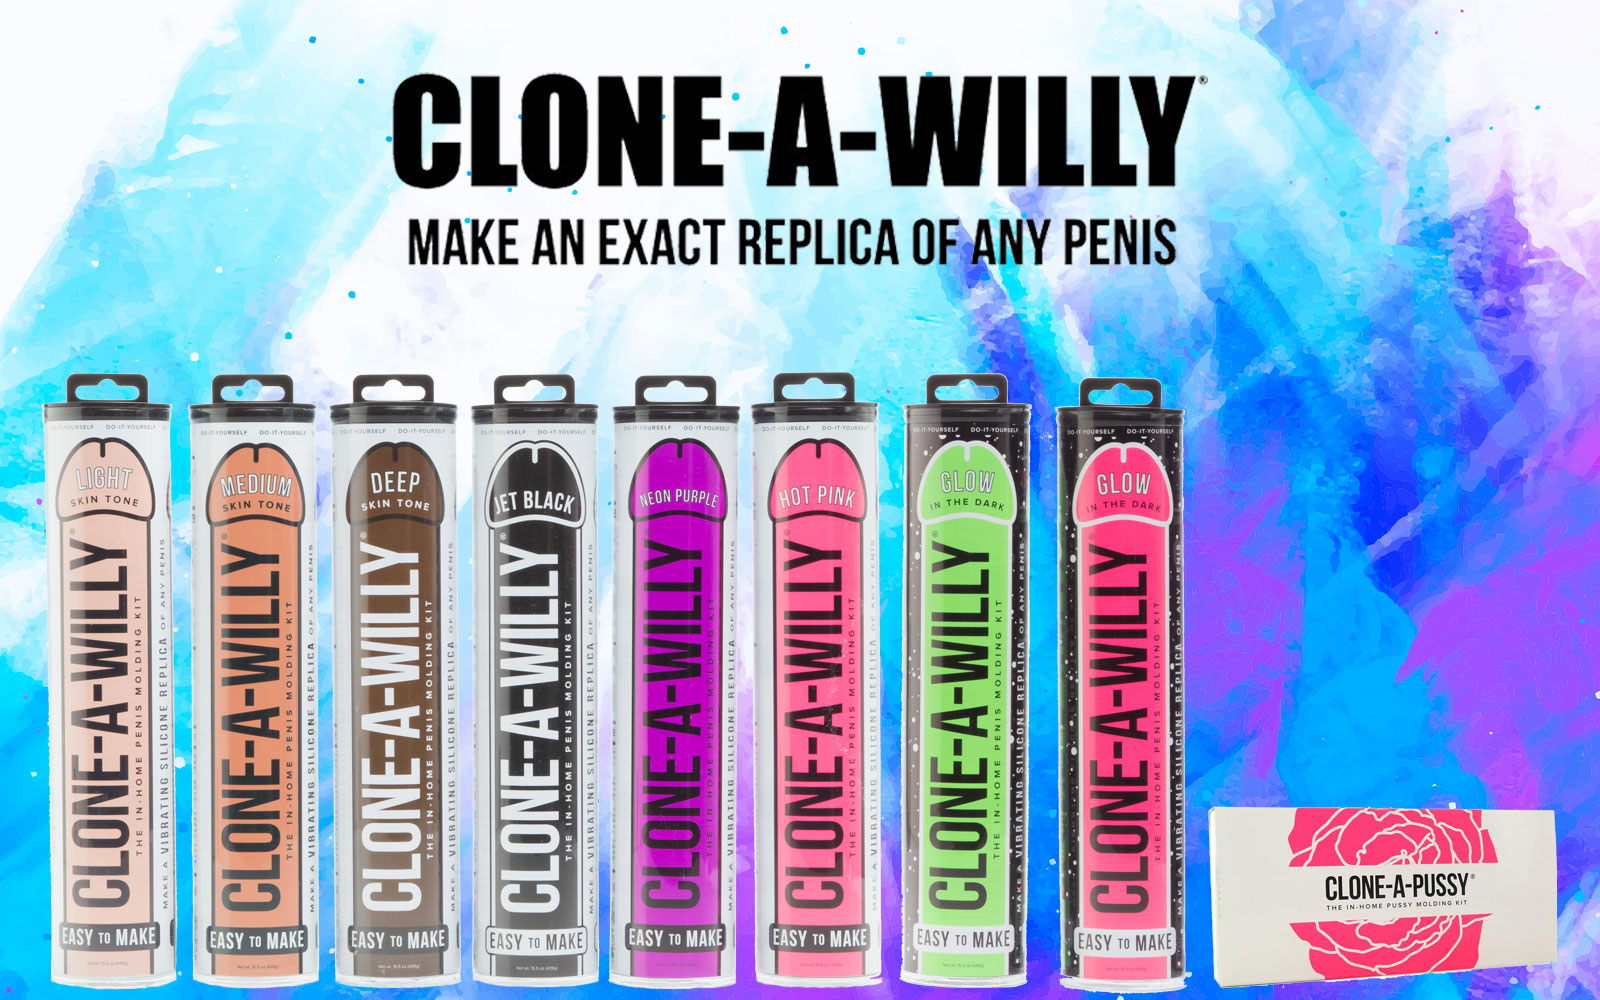 Clone-a-Willy at Bed Time Toys